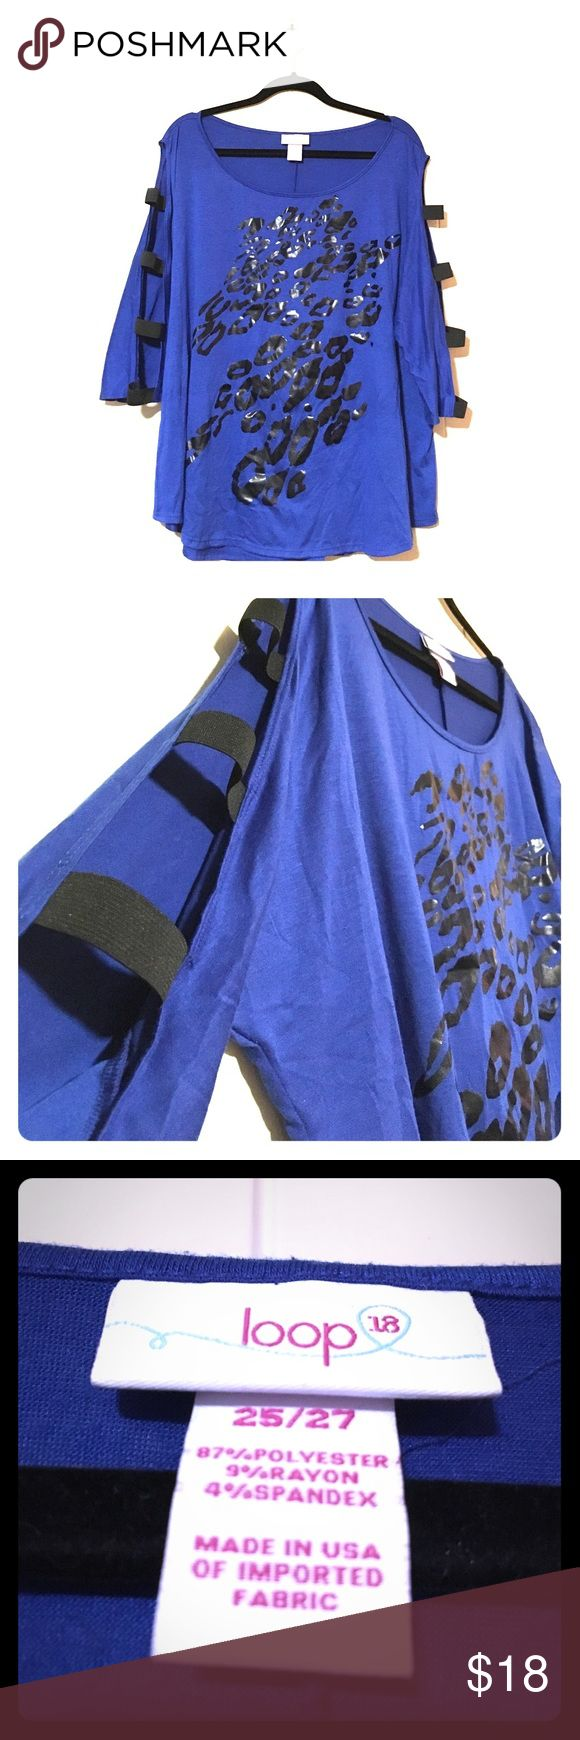 Royal Blue Blouse with Cut Out Sleeves Fun and flirty royal blue top with cheetah print details on the front and elastic arm bands down the sleeve. Fashion Bug Tops Blouses